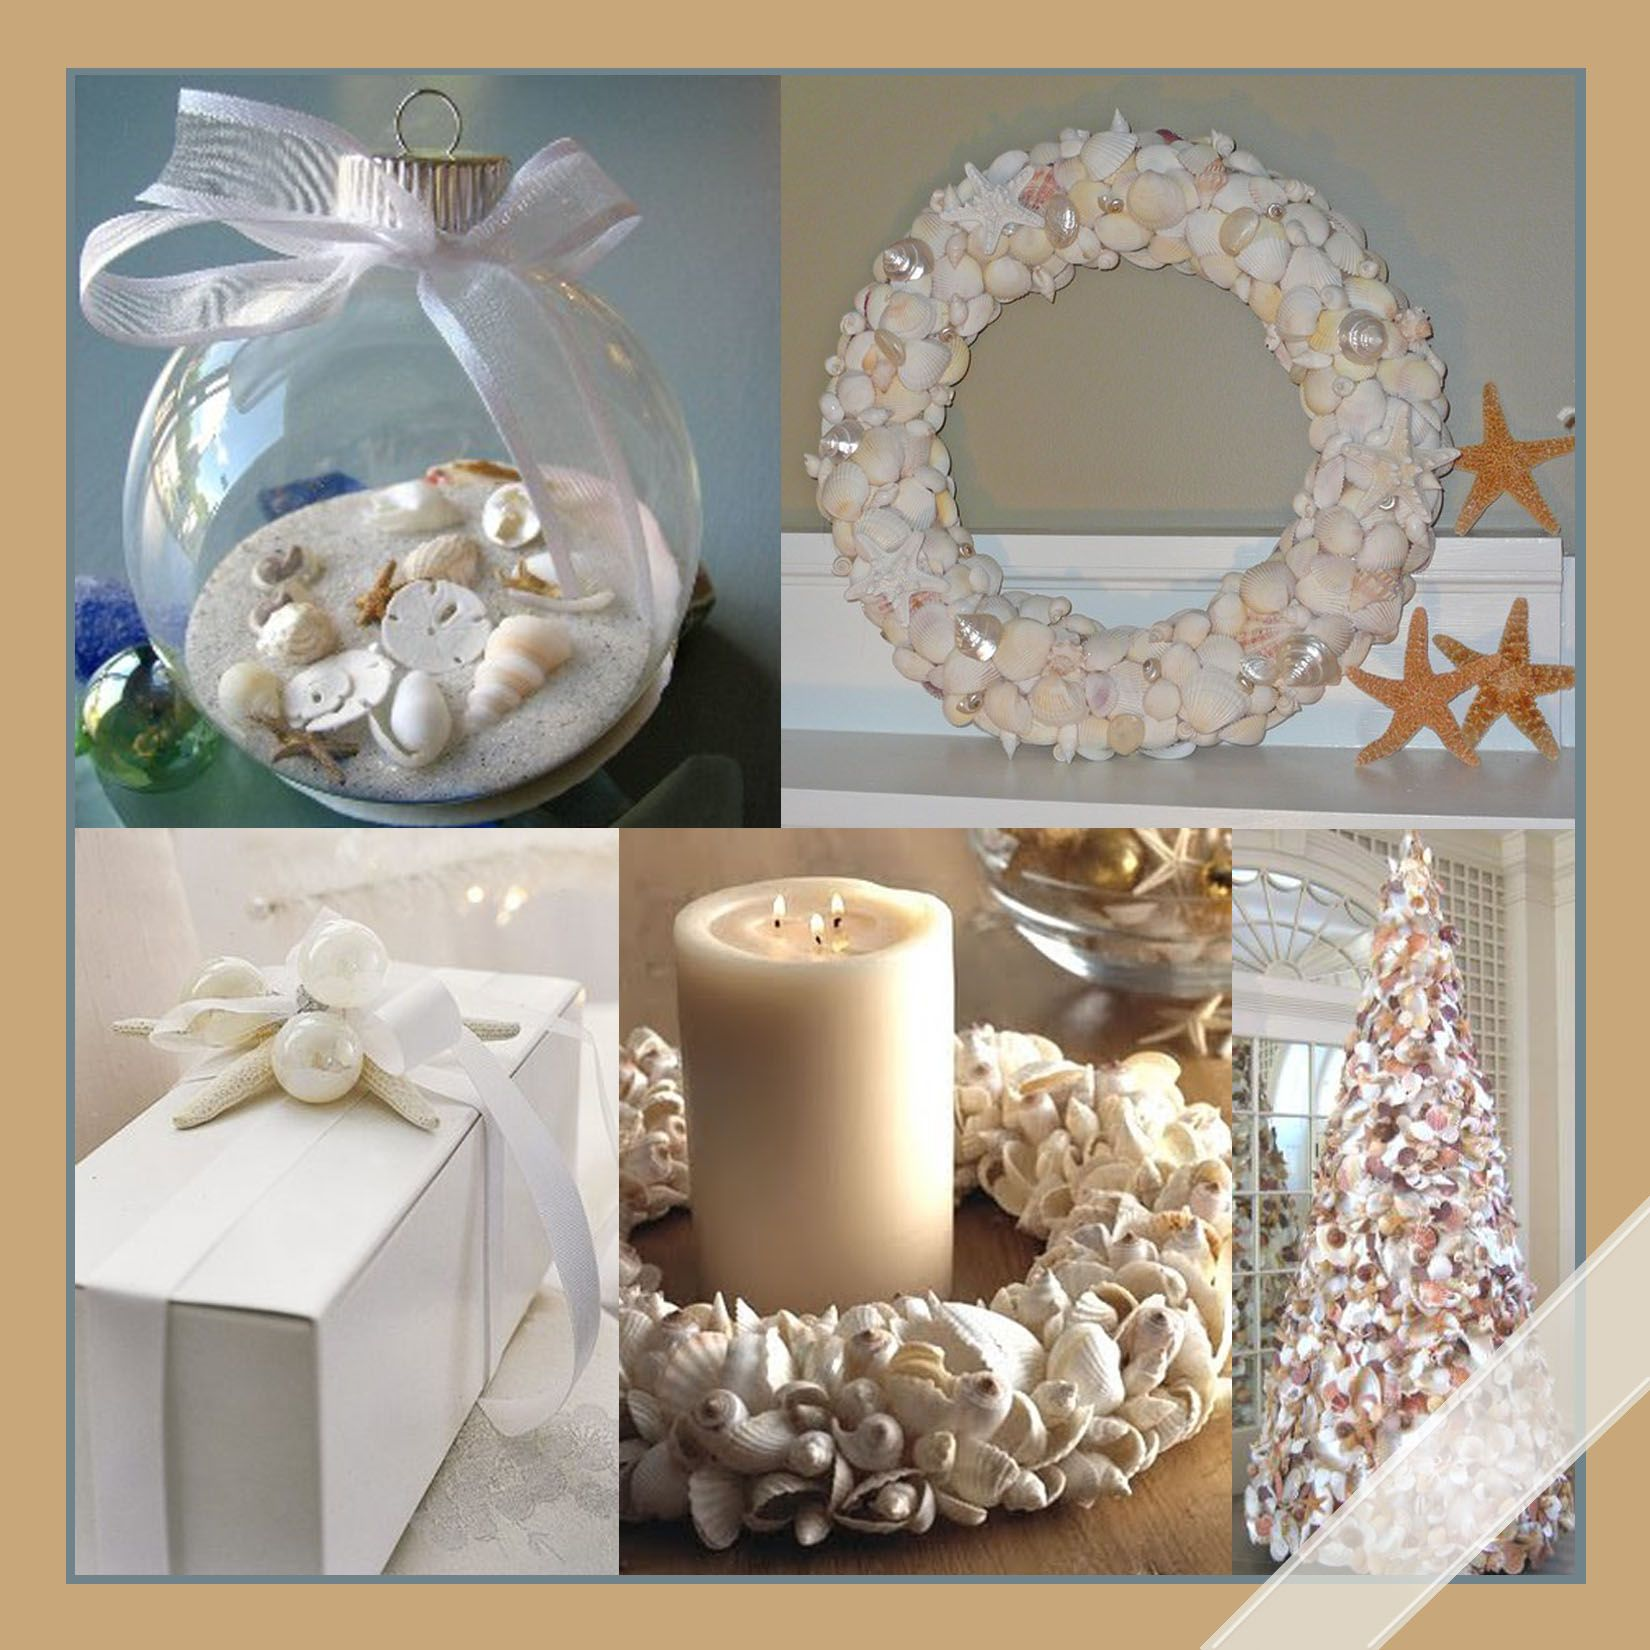 beach items for decorating beach theme christmas decor ideas - Beach Decorations